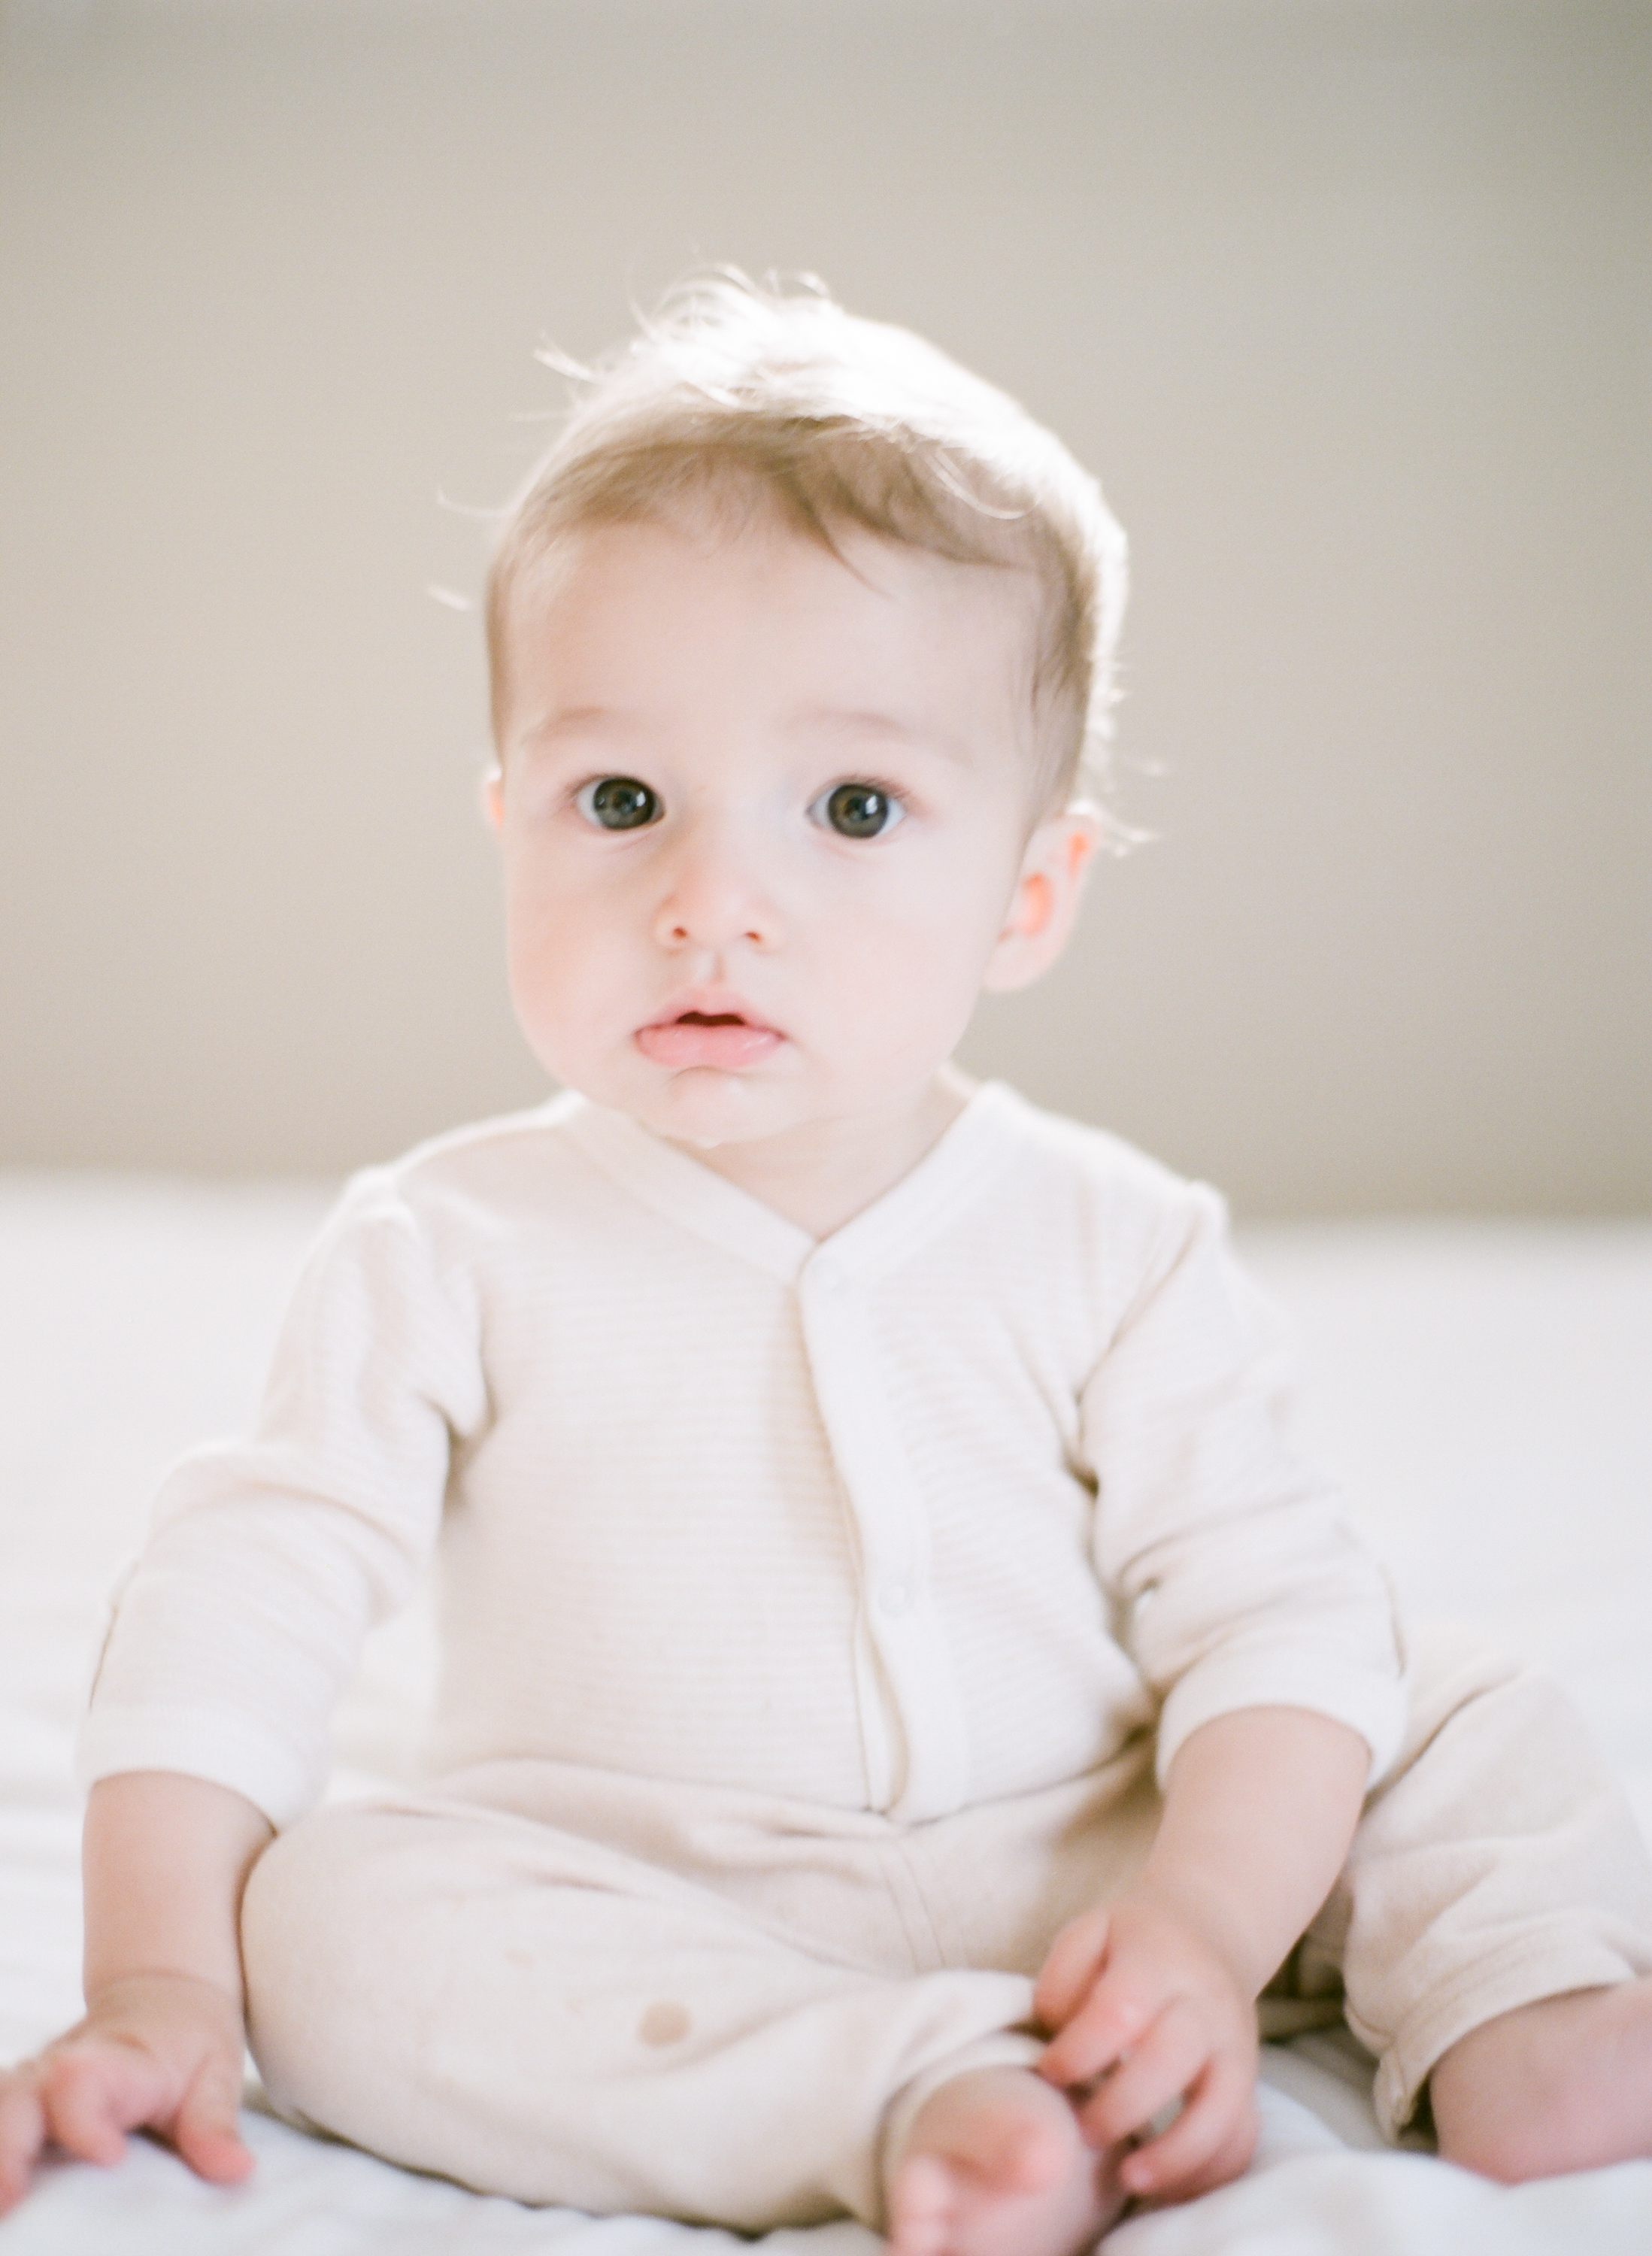 Simple little boy outfits | Kaylie B. Poplin Photography | Birmingham, Alabama Fine Art Film Photographer